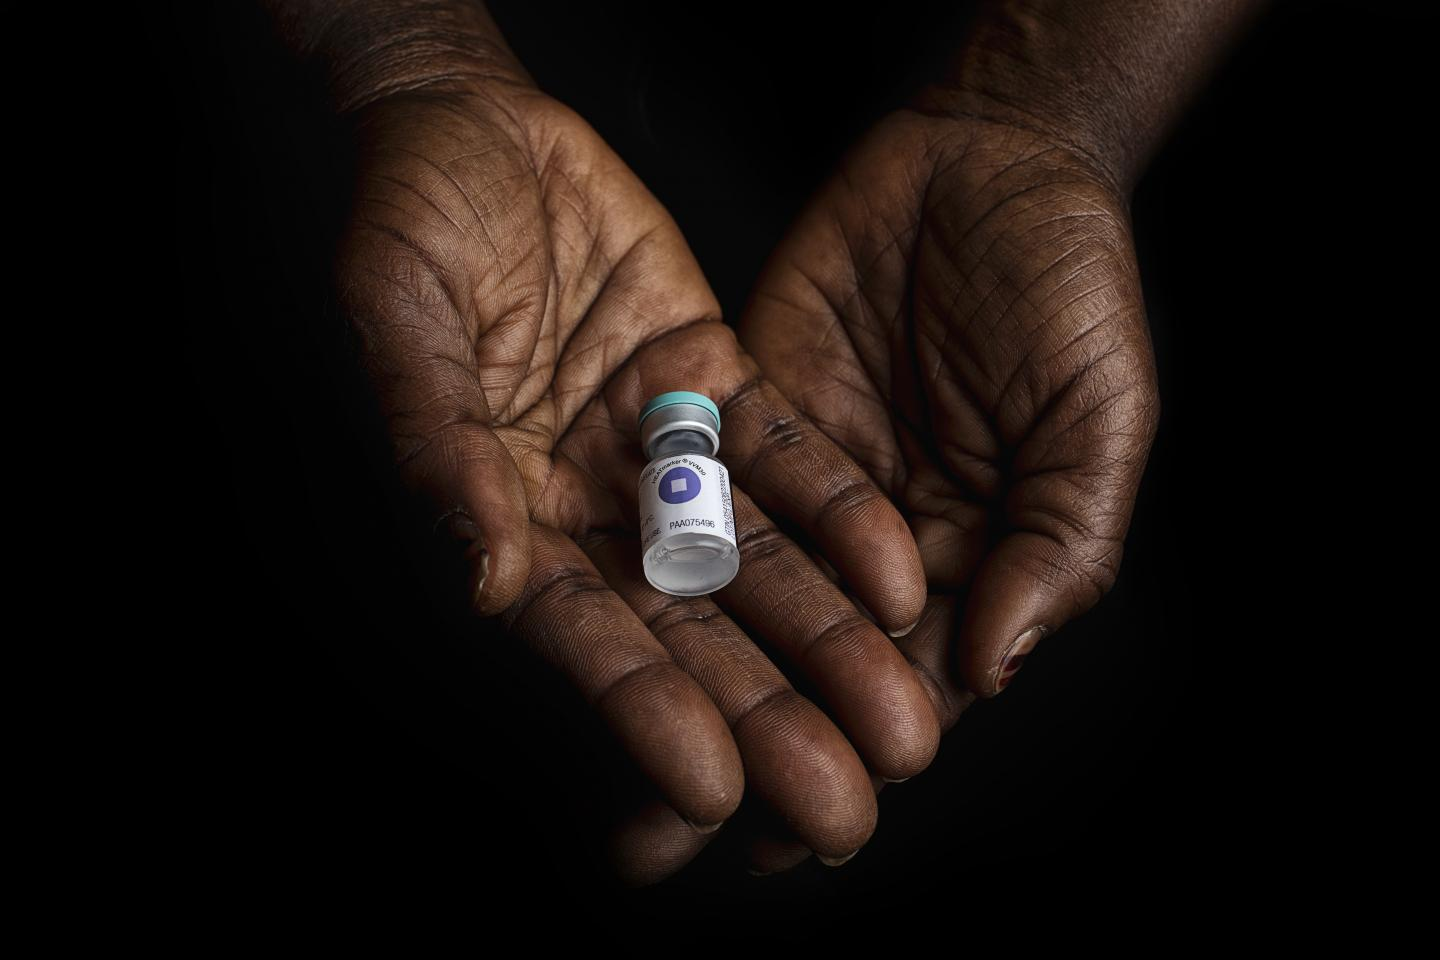 Pneumonia vaccine in a Health Center in Mali, March 2018.